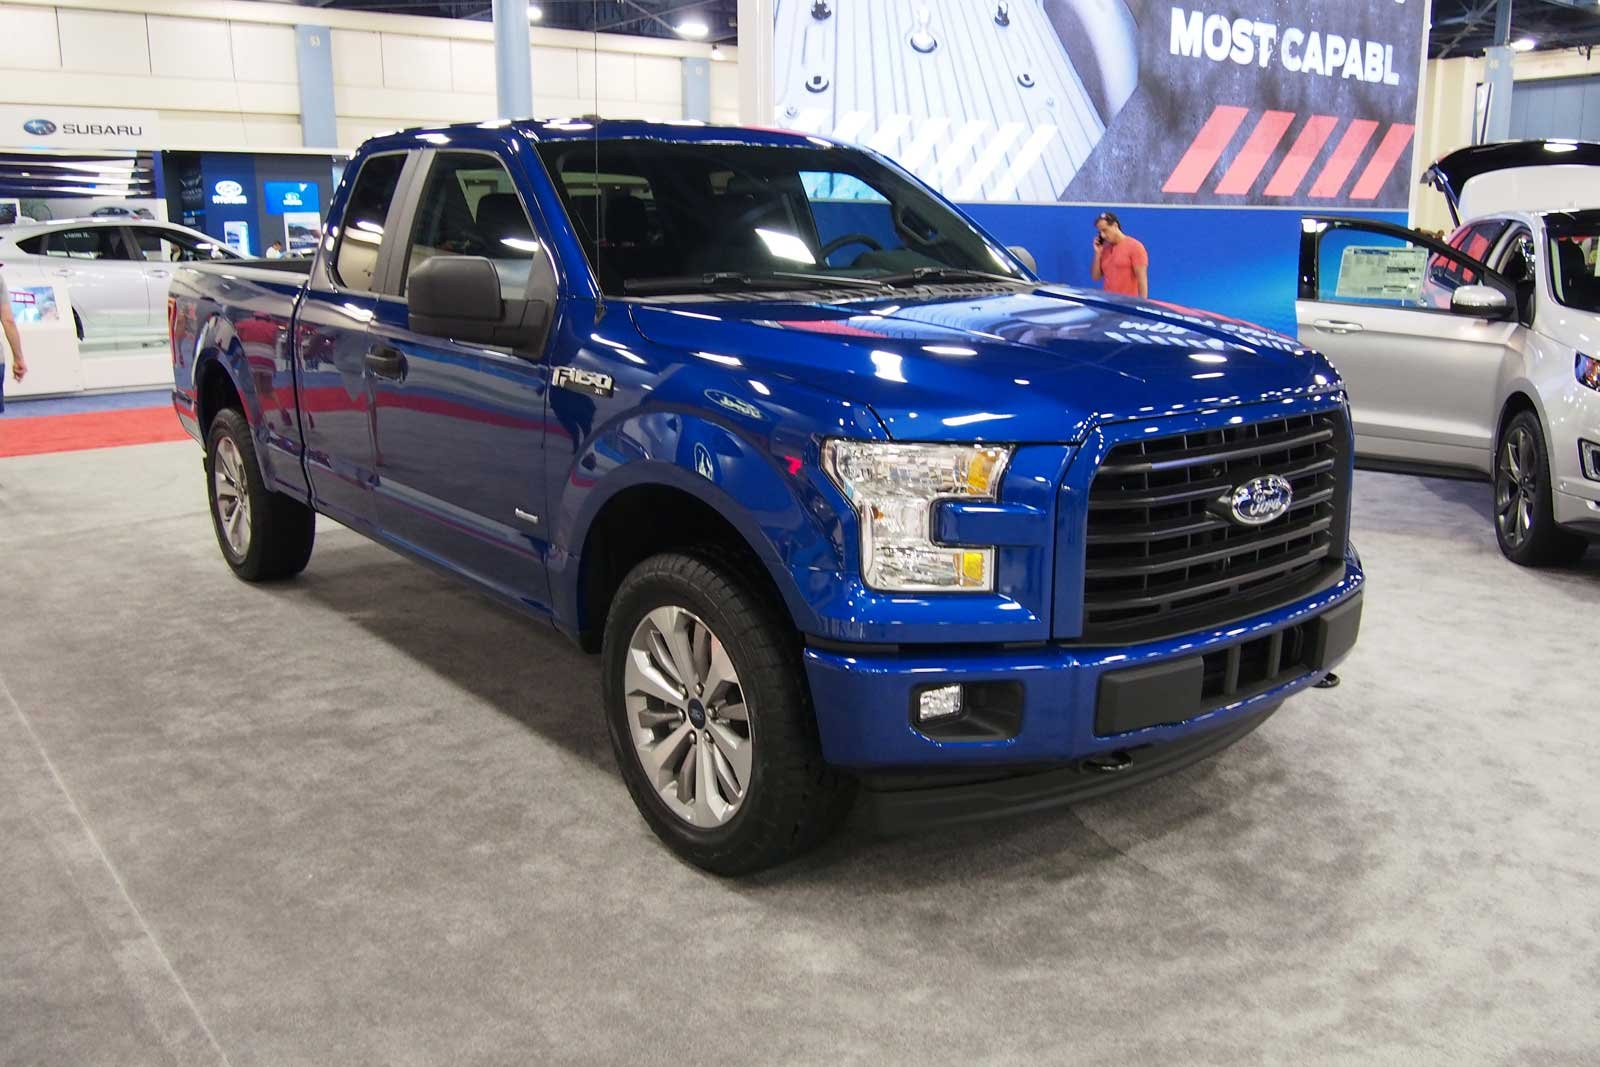 ford brings back the stx appearance pack for f series trucks allfordmustangs. Black Bedroom Furniture Sets. Home Design Ideas